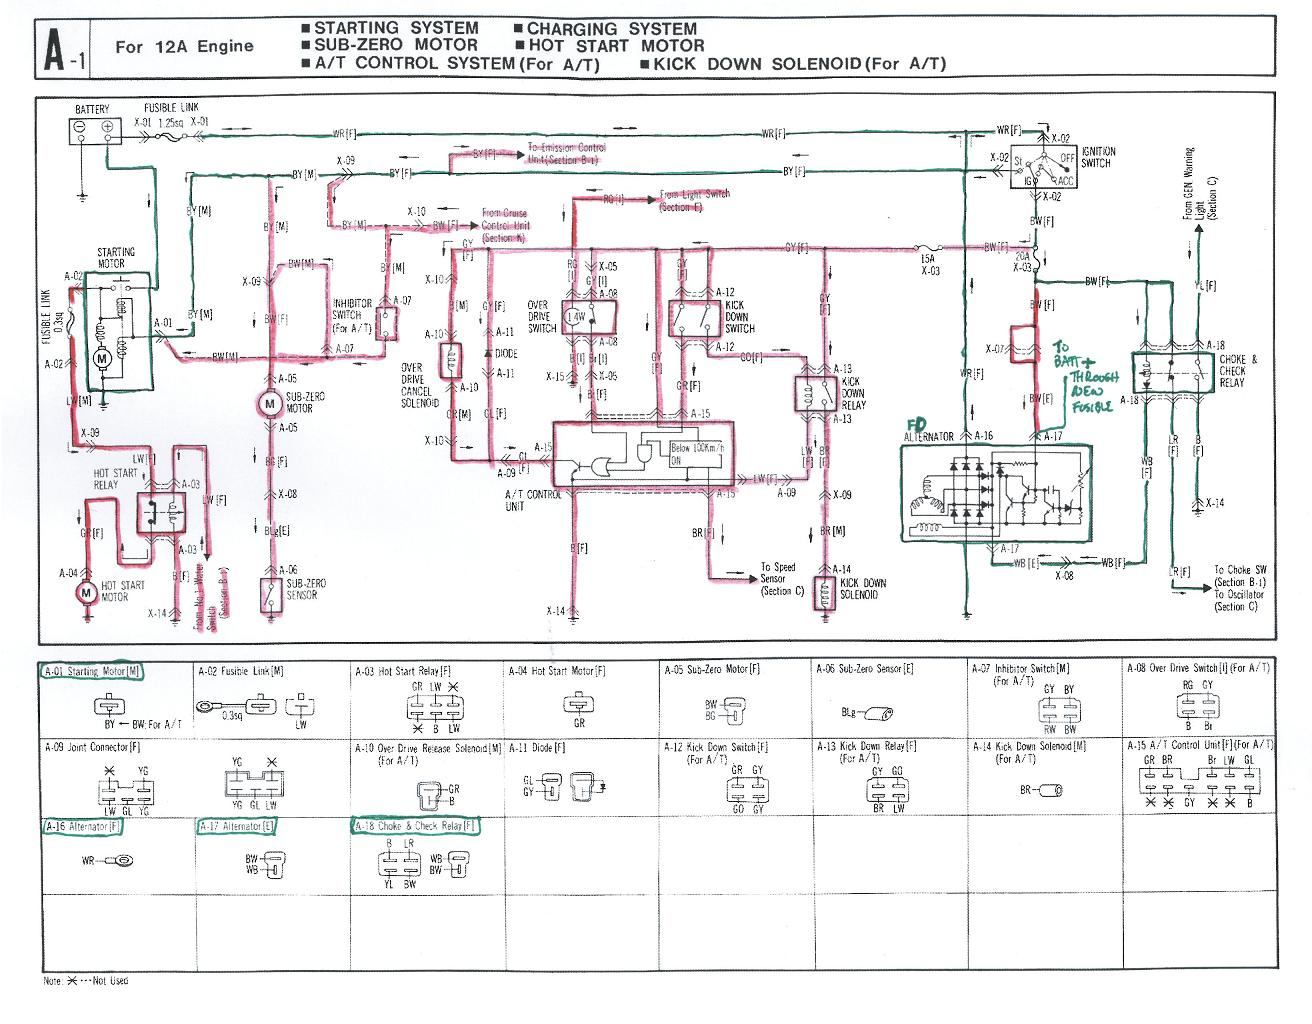 [DIAGRAM_38DE]  D2C9105 1999 Kenworth T800 Wiring Diagram | Wiring Library | Kenworth T800 Wiring Diagram Radio |  | Wiring Library